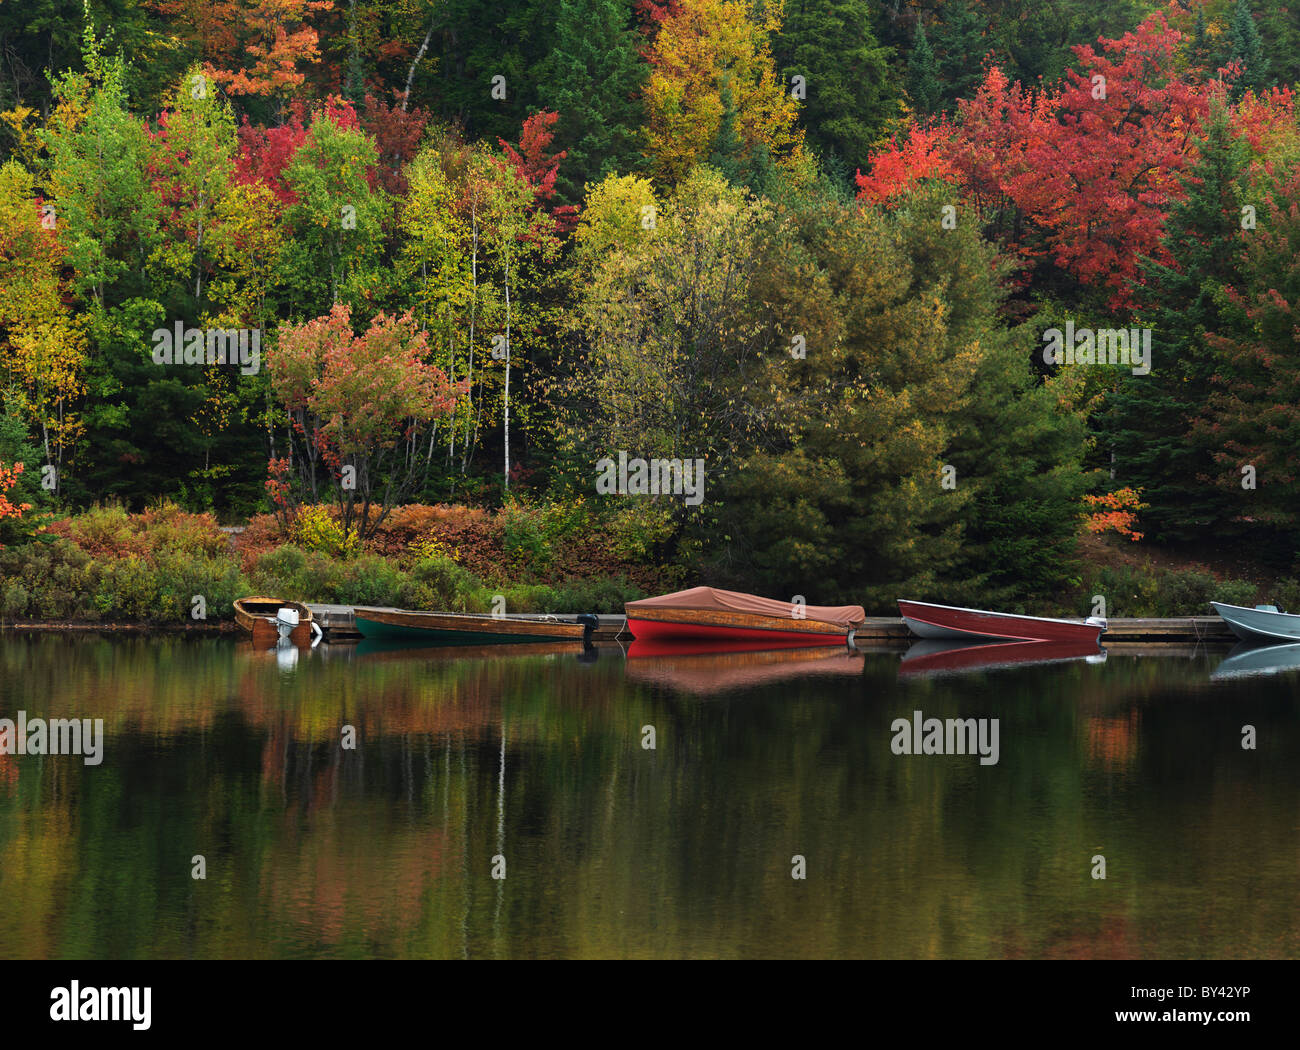 Docked boats at Canoe lake. Fall nature scenery. Algonquin Provincial Park, Ontario, Canada. - Stock Image